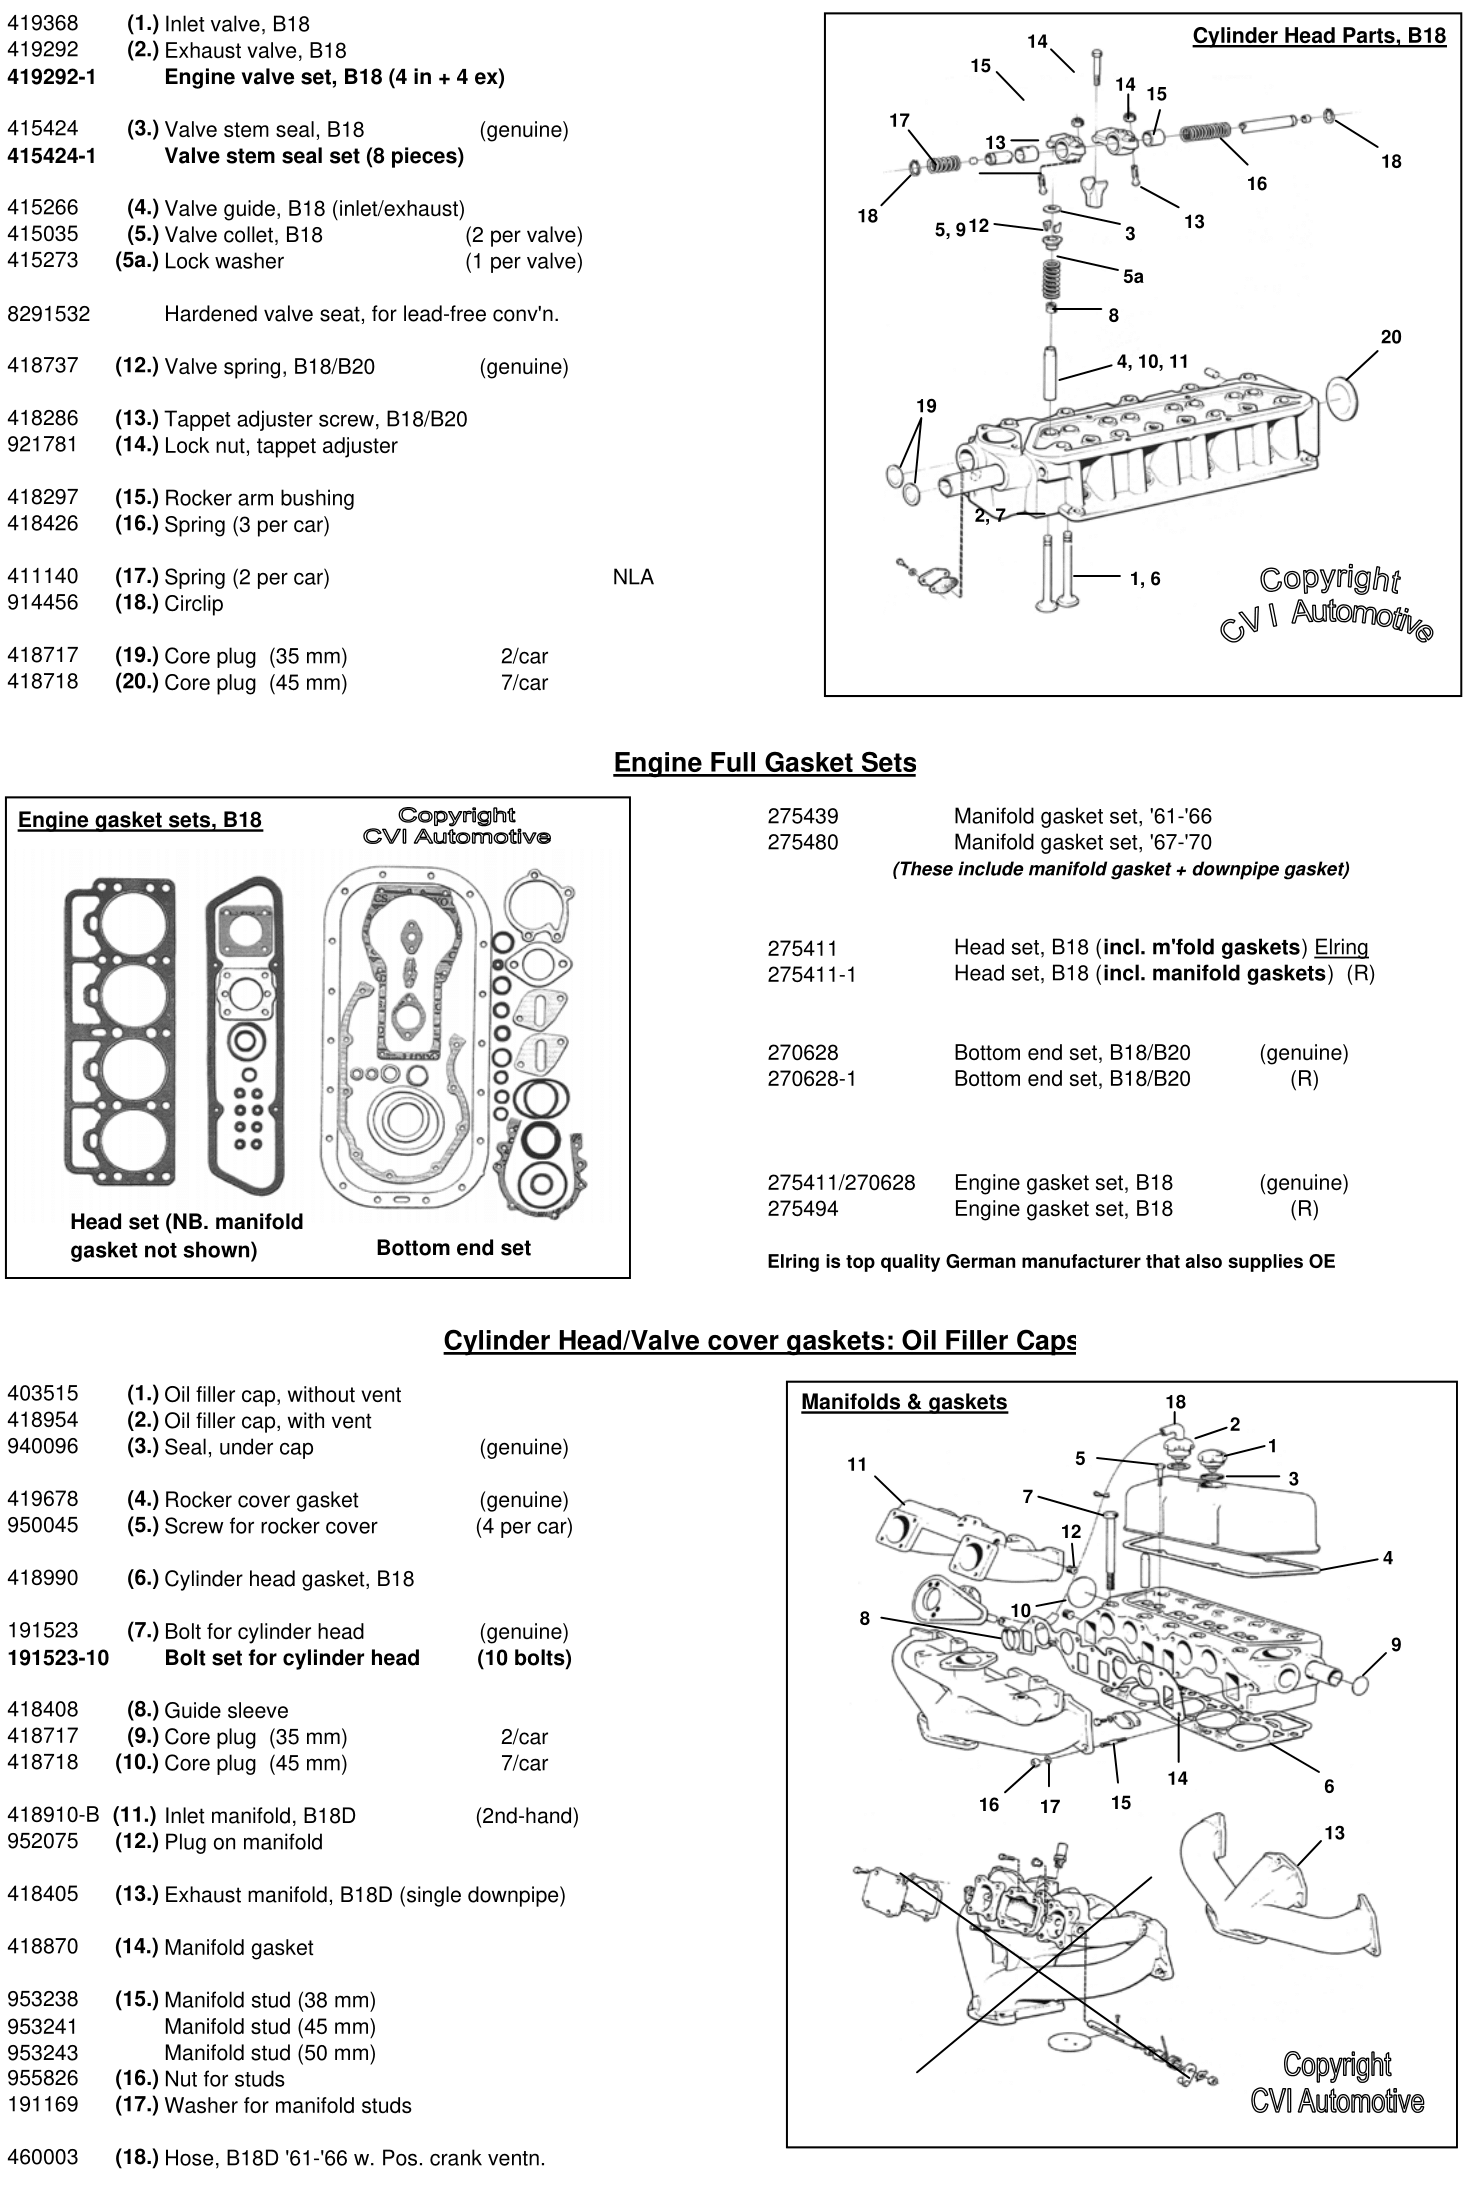 Exploded view for gasket och cylinder head